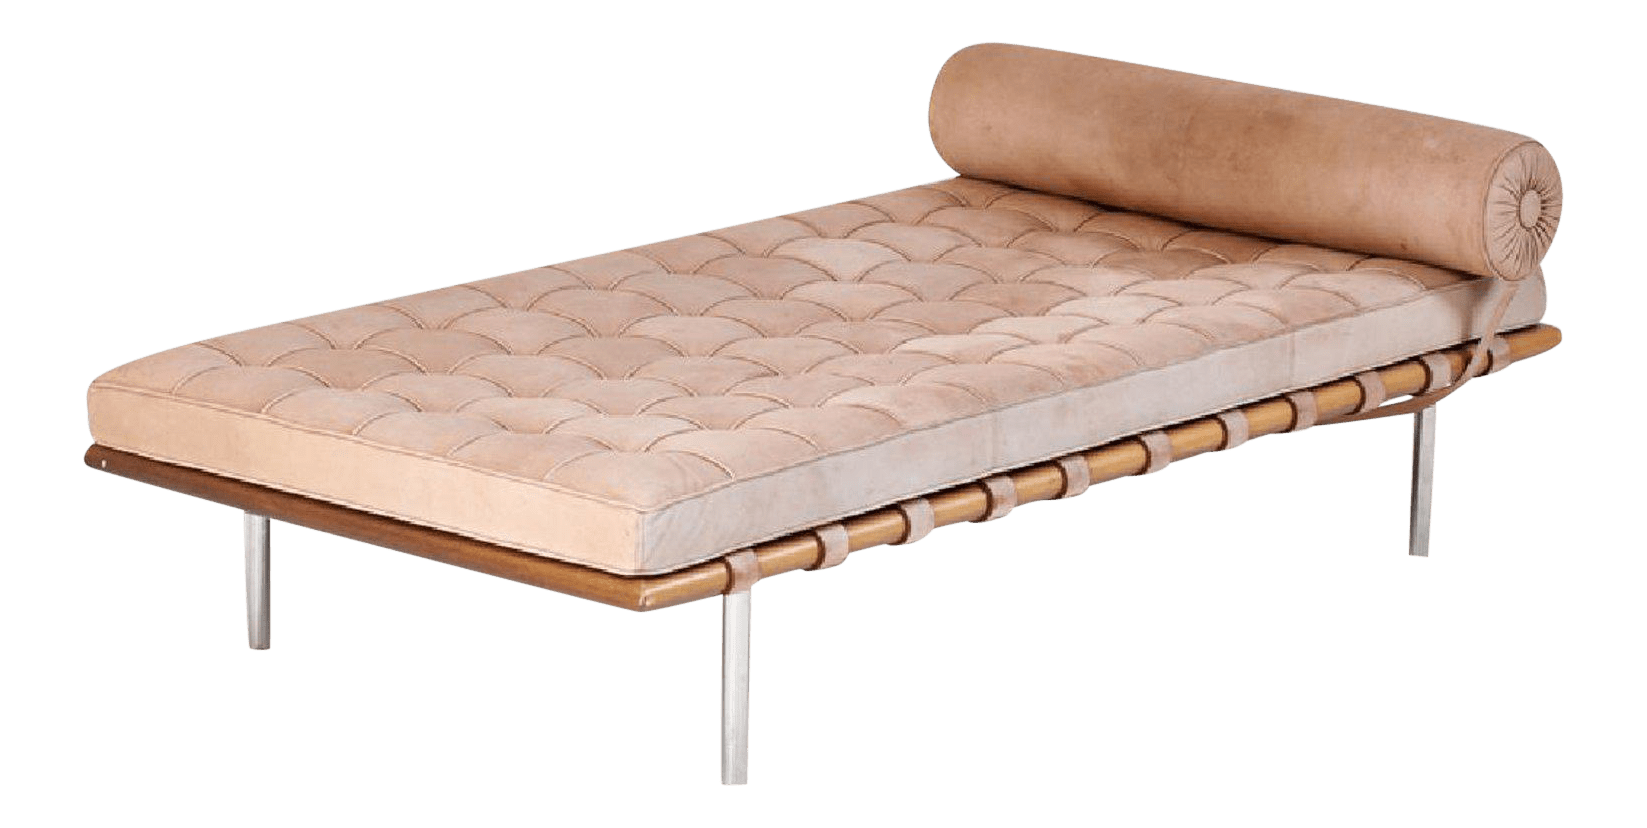 Barcelona Daybed Barcelona Daybed By Mies Van Der Rohe For Knoll Suede Chaise